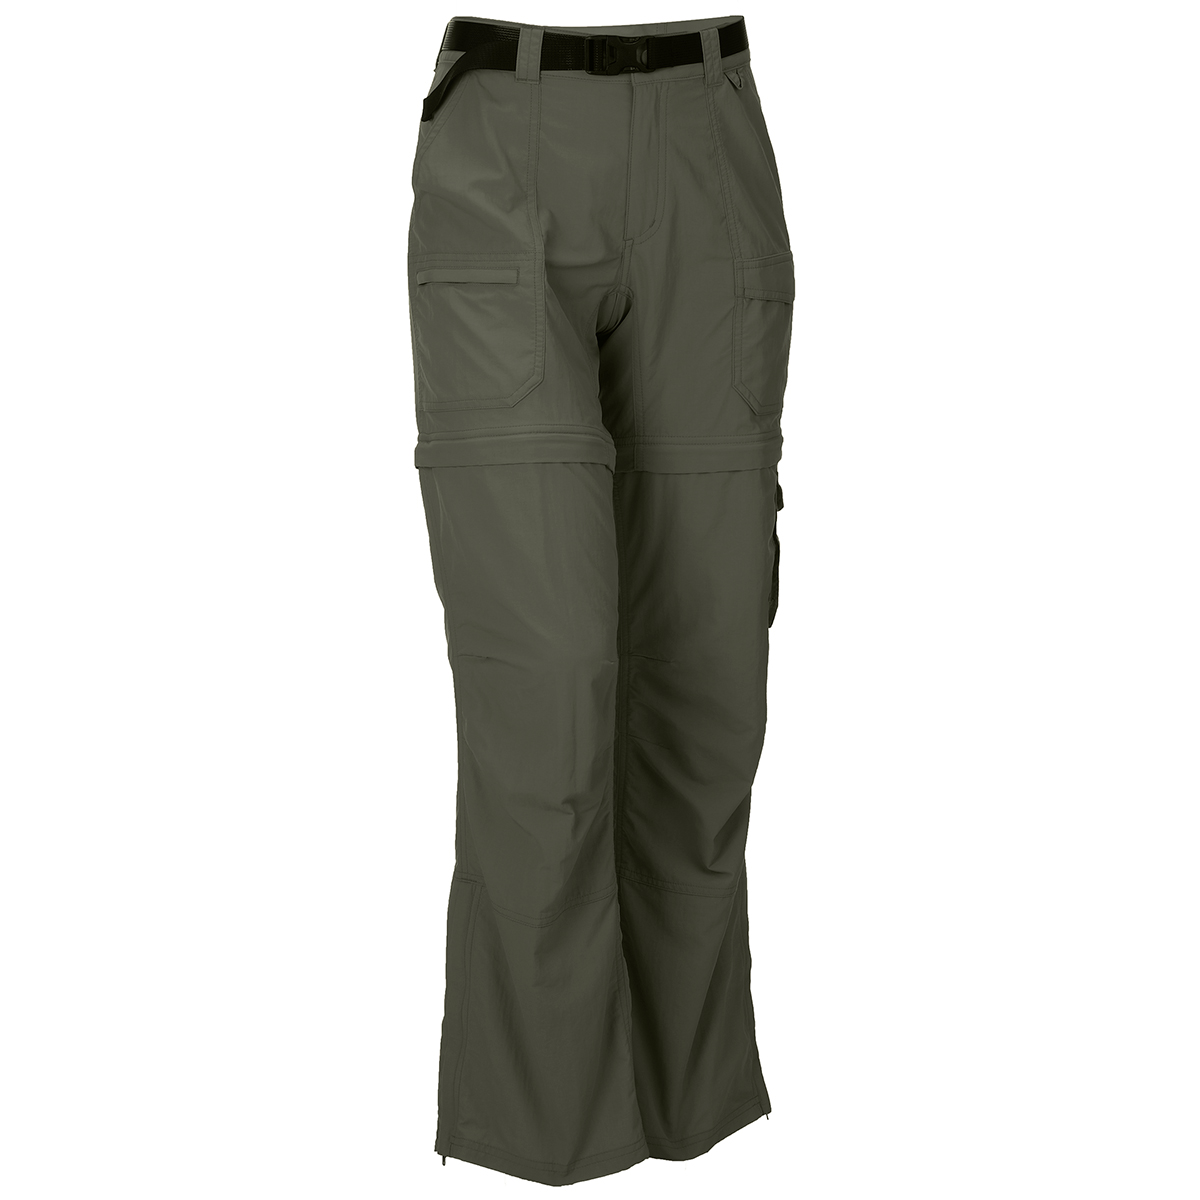 Ems Women's Camp Cargo Zip-Off Pants - Green, 8/R